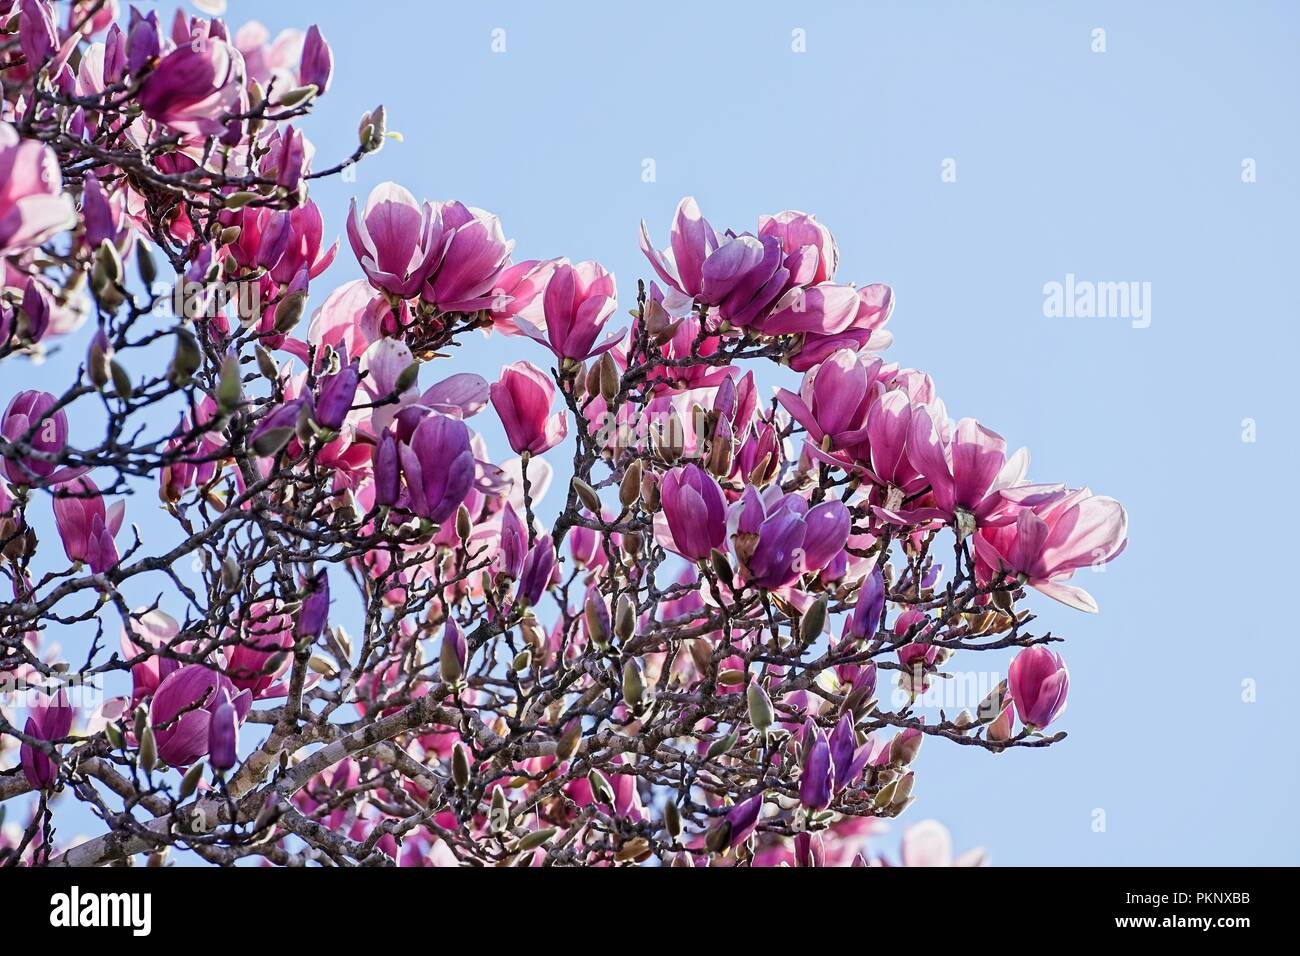 Looking Up Into The Canopy Of A Large Magnolia Tree Filled With